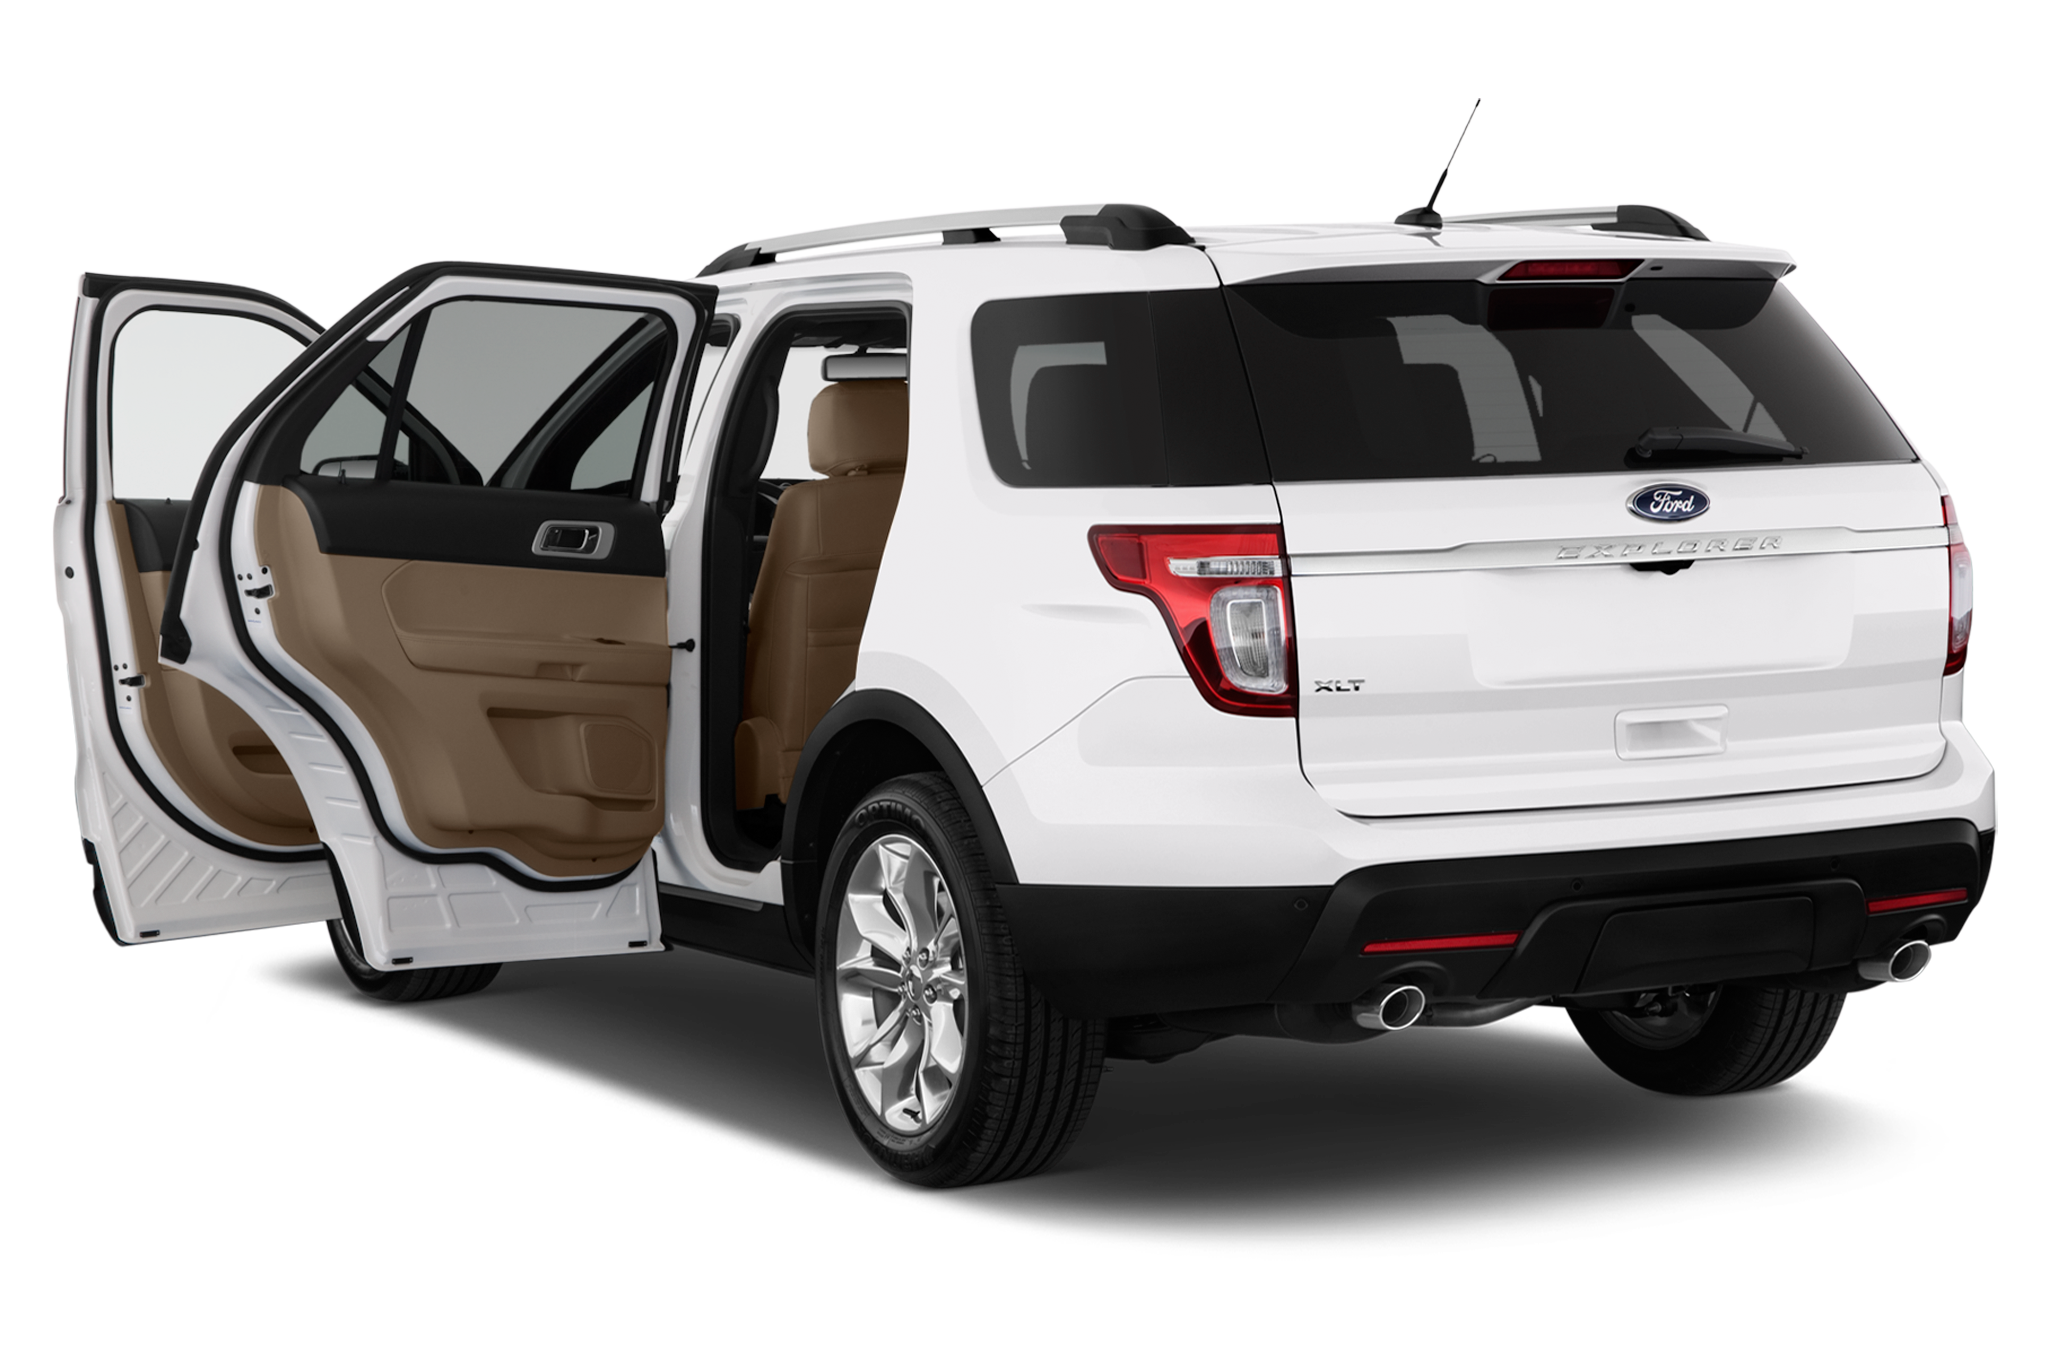 2012 ford explorer xlt suv doors first drive ford explorer and 2012 ford edge ecoboost automobile  at creativeand.co